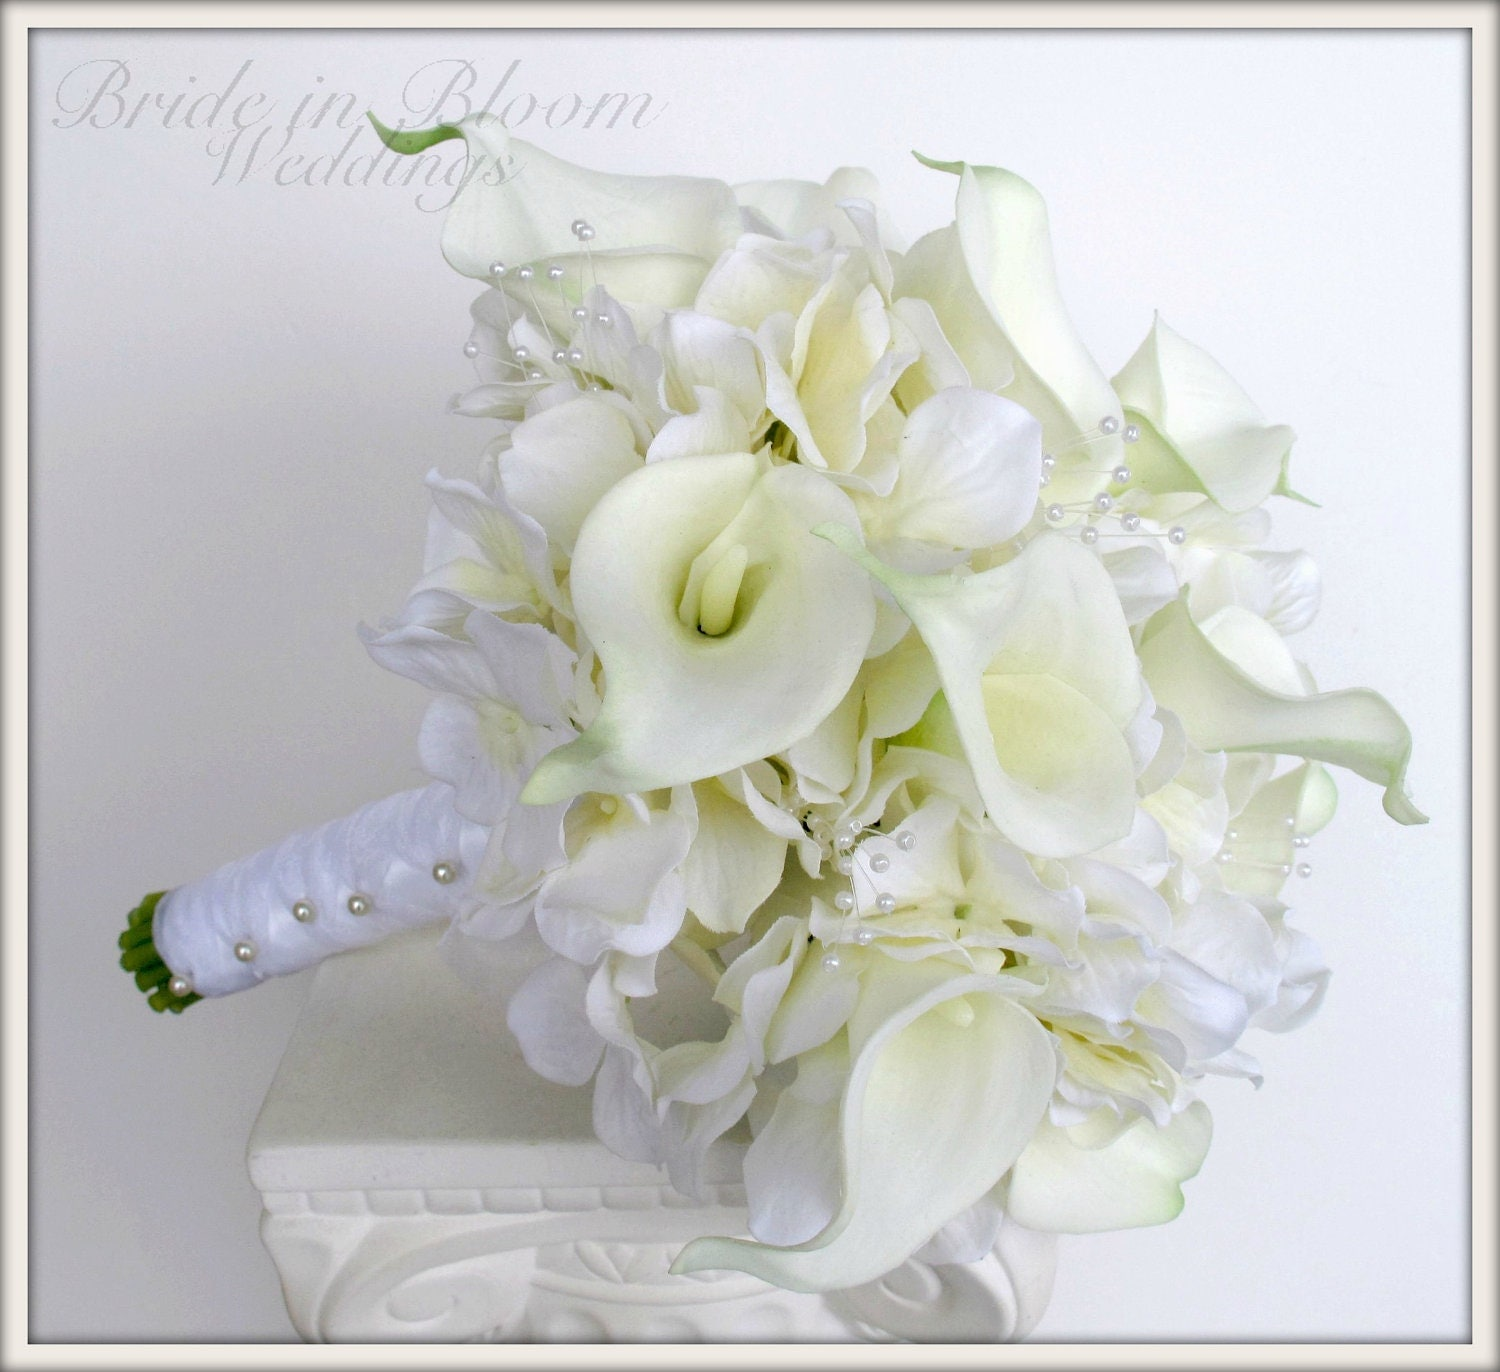 Beautiful wedding bouquets with lilies images styles ideas 2018 bridal bouquets made with calla lilies wedding flowers real touch junglespirit Choice Image